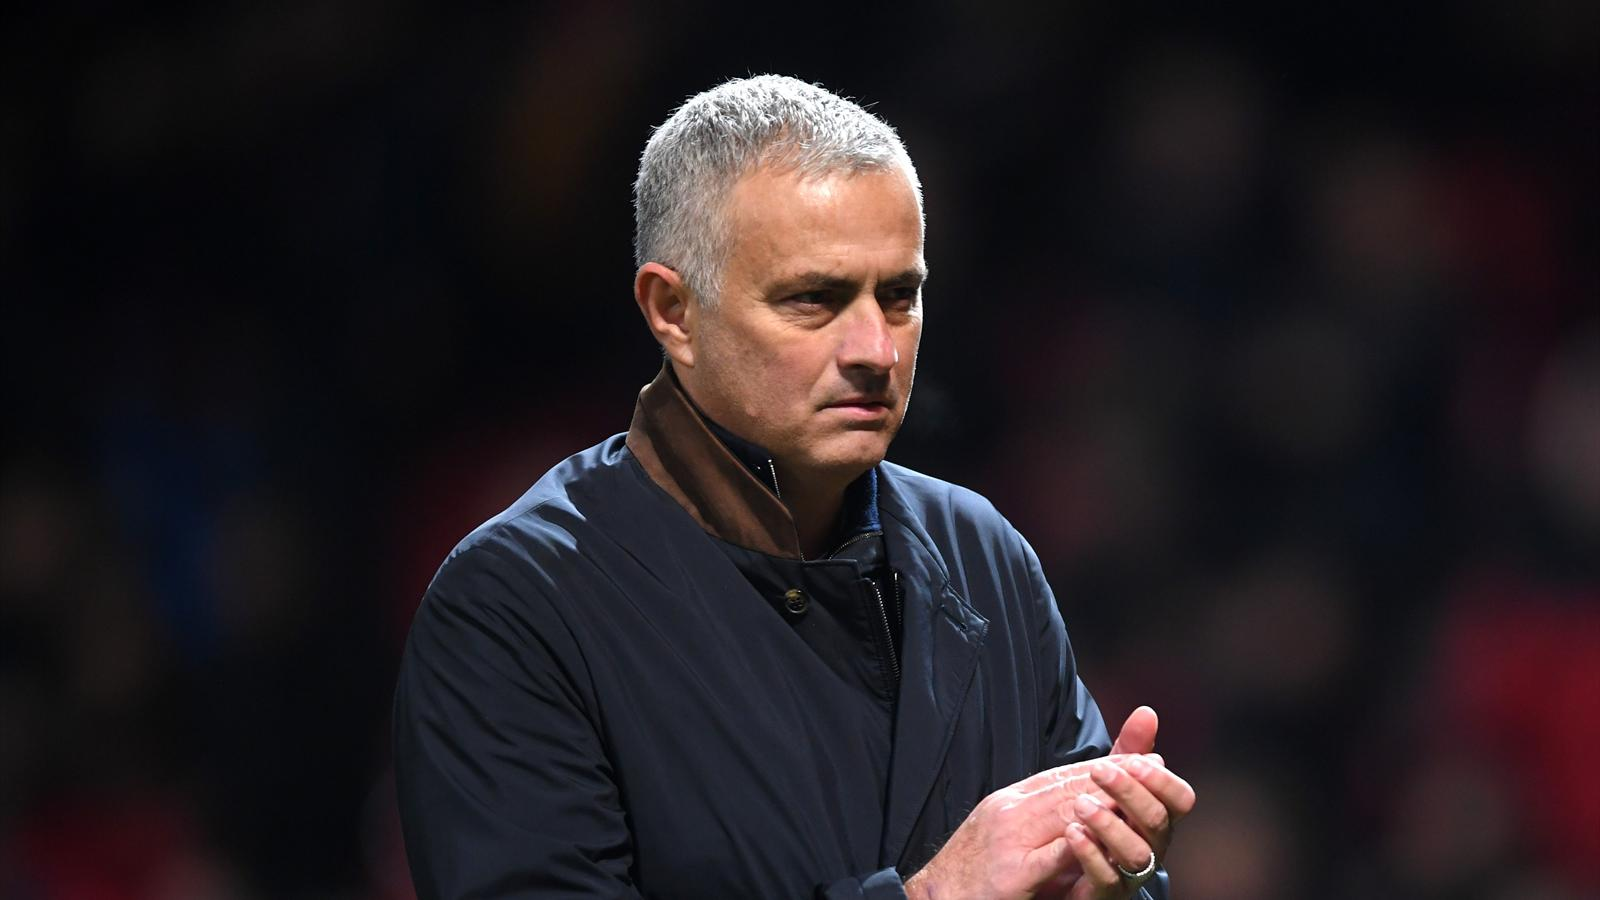 Football news - Jose Mourinho rejects chance to manage Benfica - reports - SuperLiga 2018-2019 ...